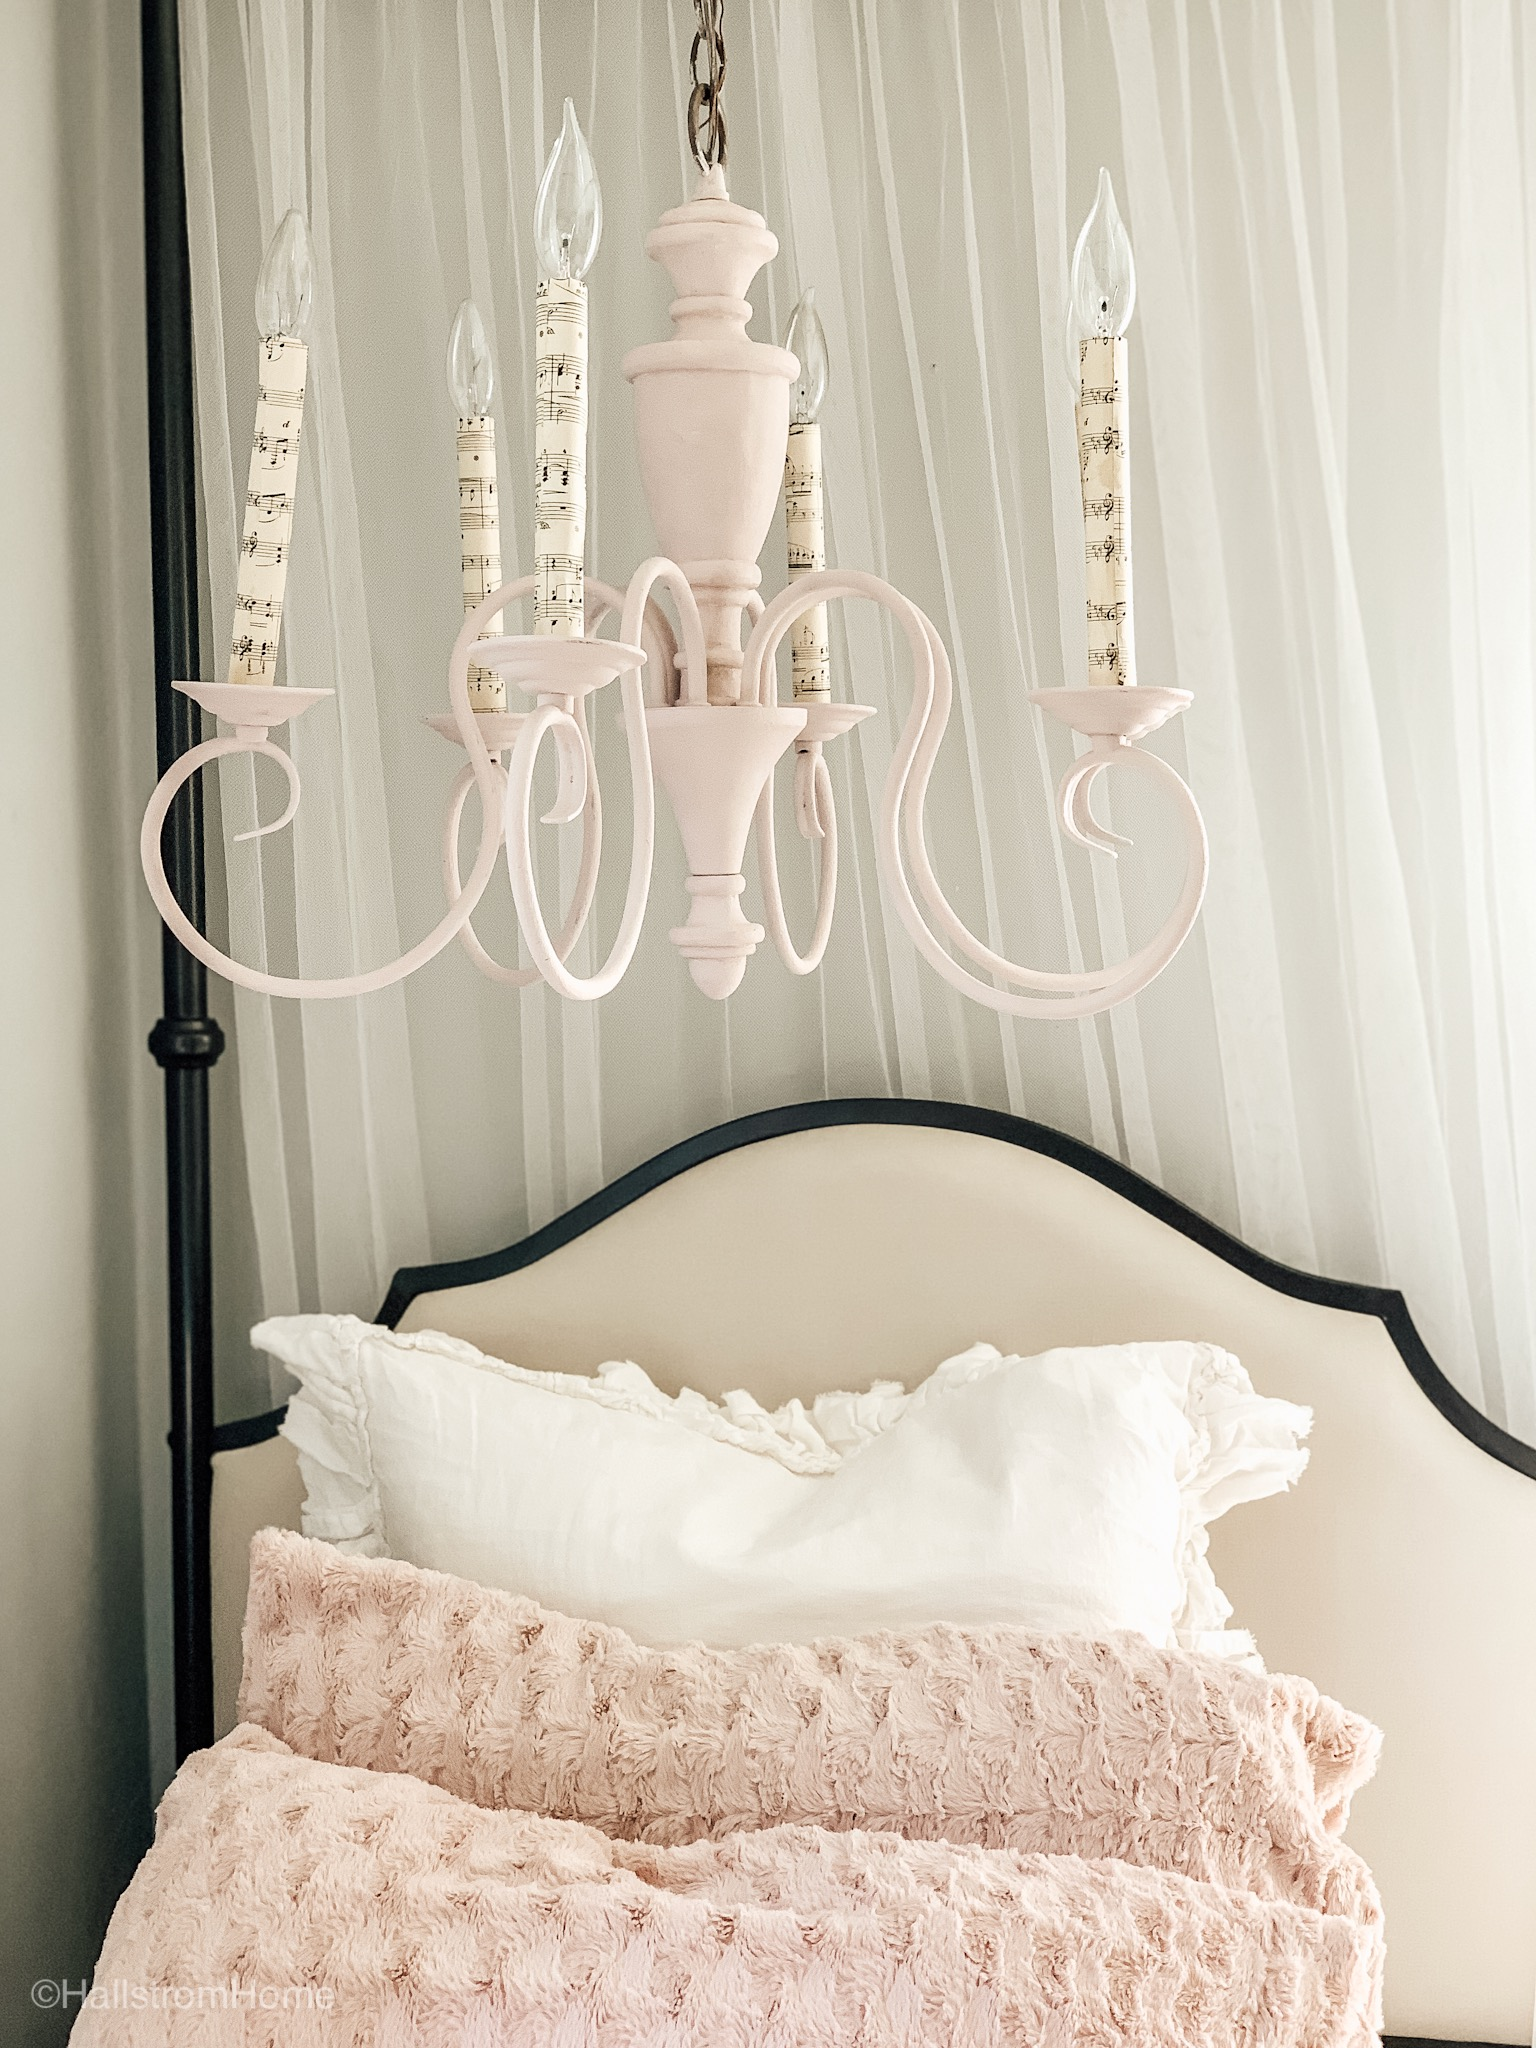 Chandelier Makeover in Minutes\Bedroom on a Budget|diy chalk paint|chalk paint|chalk paint tips|shabby chic decor|bedroom makeover|how to|kids crafts|diy crafts|farmhouse decor|shabby chic farmhouse decor|chandelier makeover|chandelier update|how to chalk paint on metal|hallstrom Home